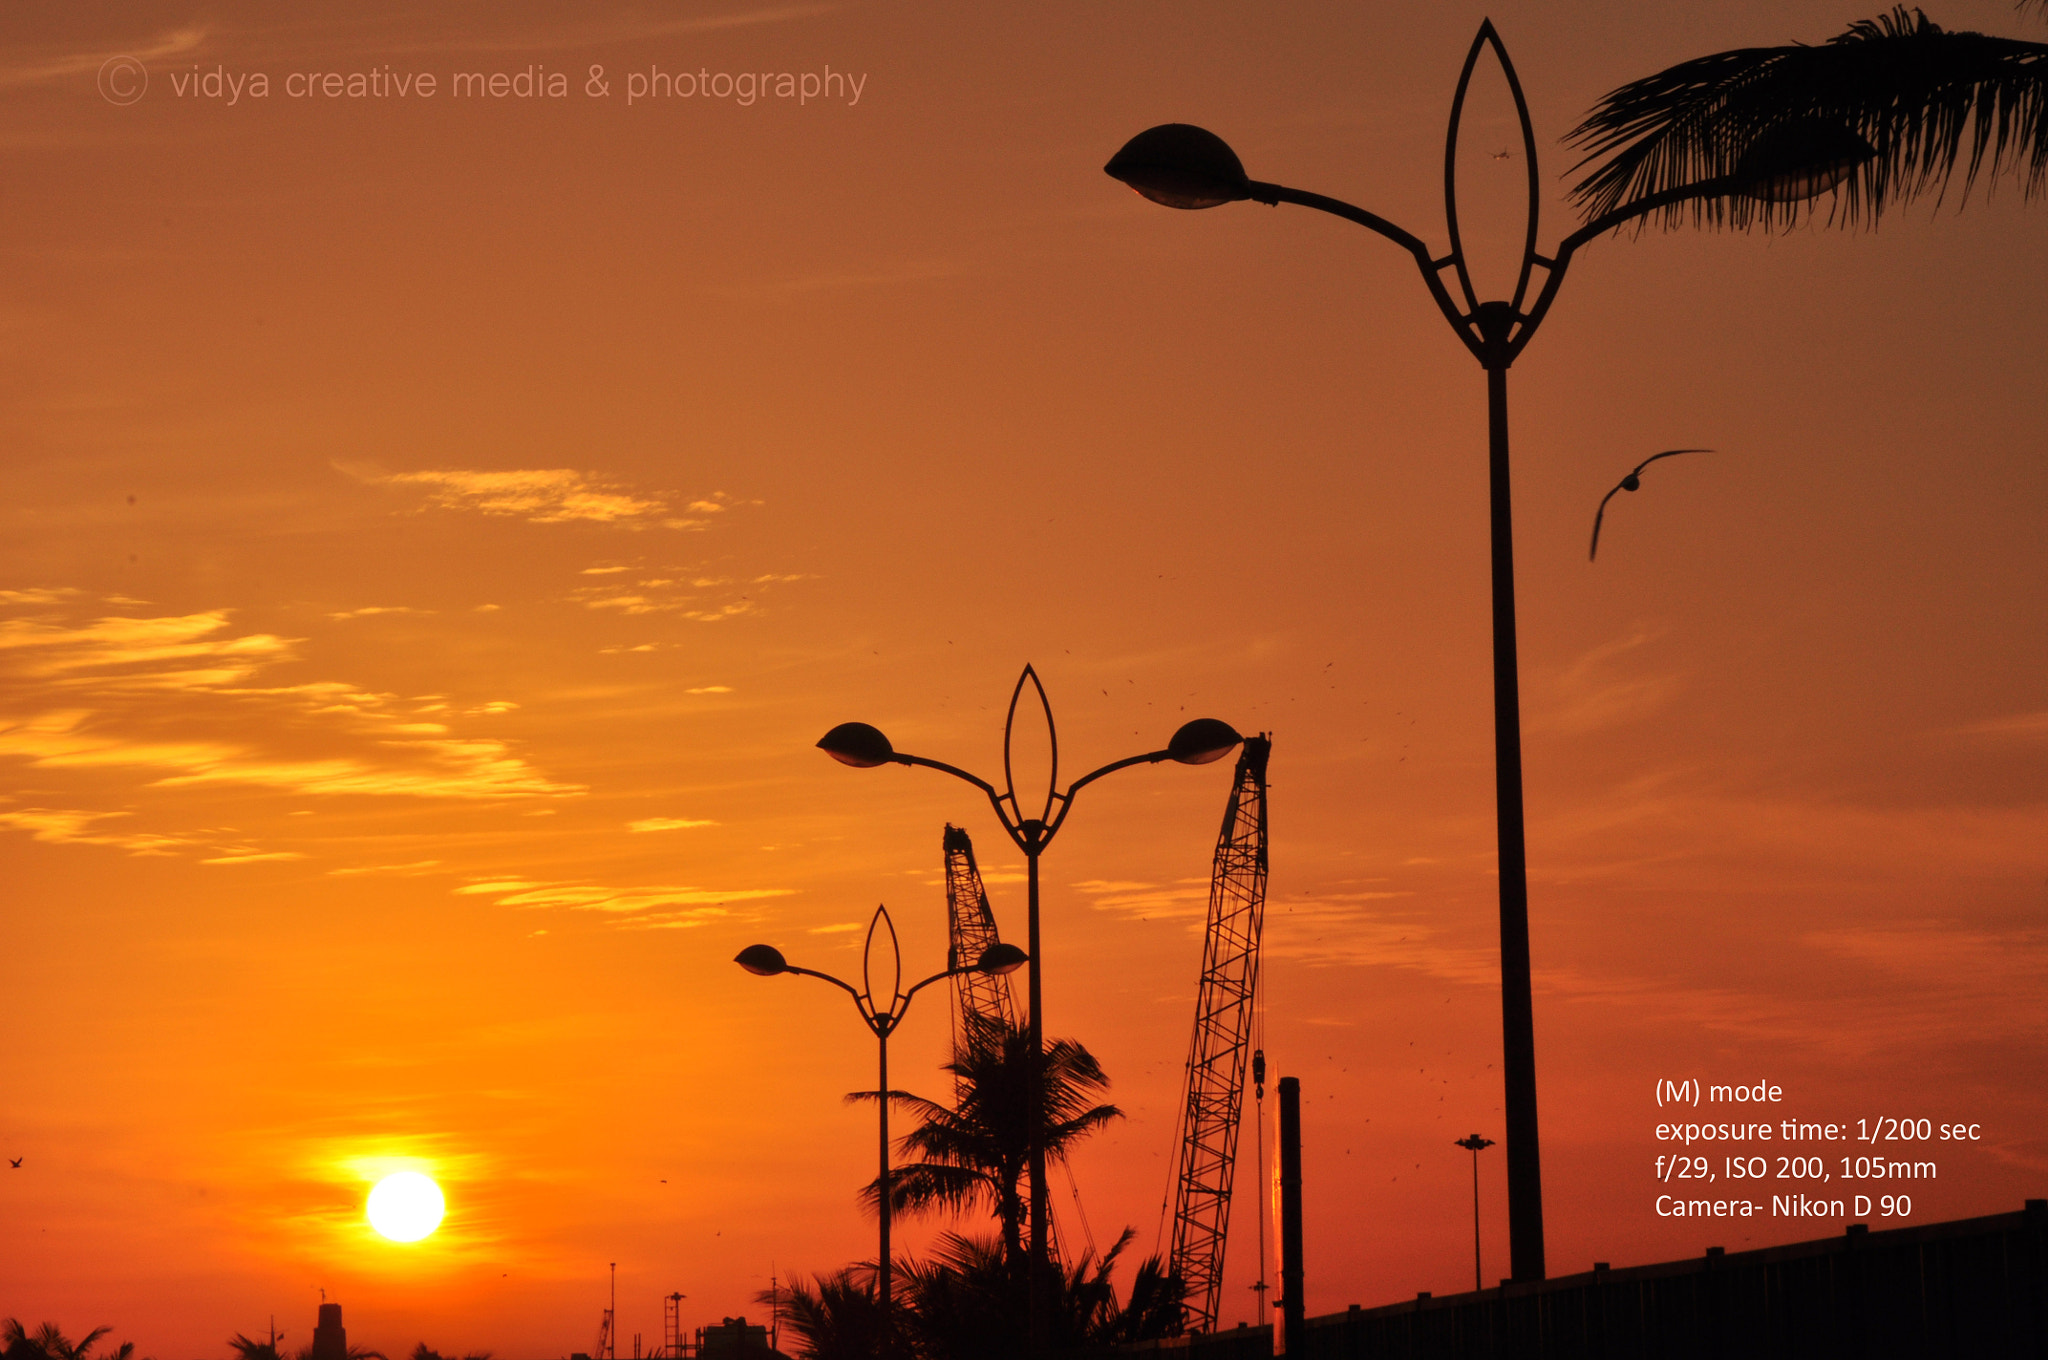 Photograph Dusk by vidya creative media & photography - Shamjith Sreevidya on 500px